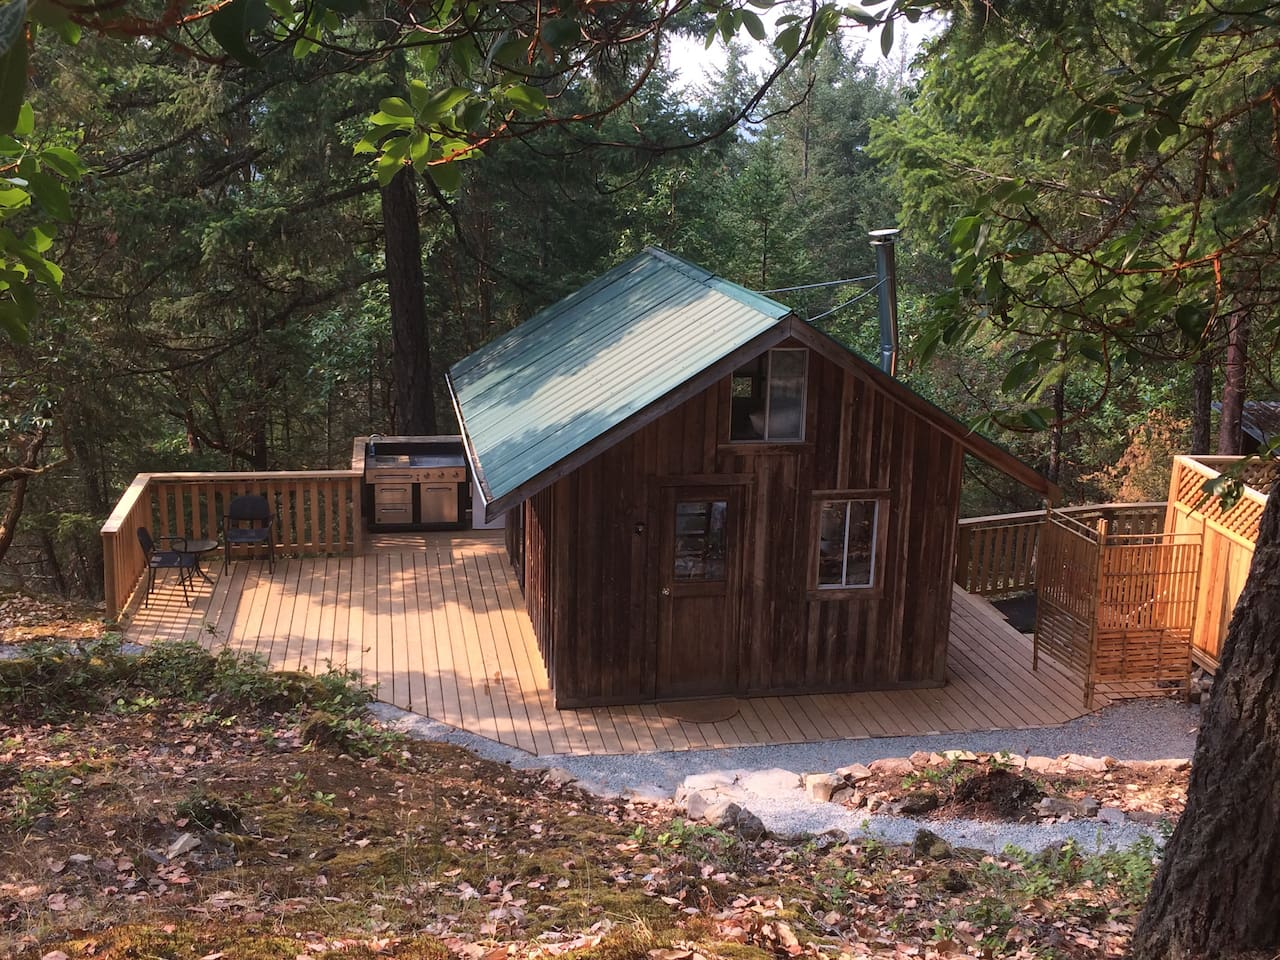 Hot water on demand outdoor shower &outhouse;outdoor cooking, propane fridge